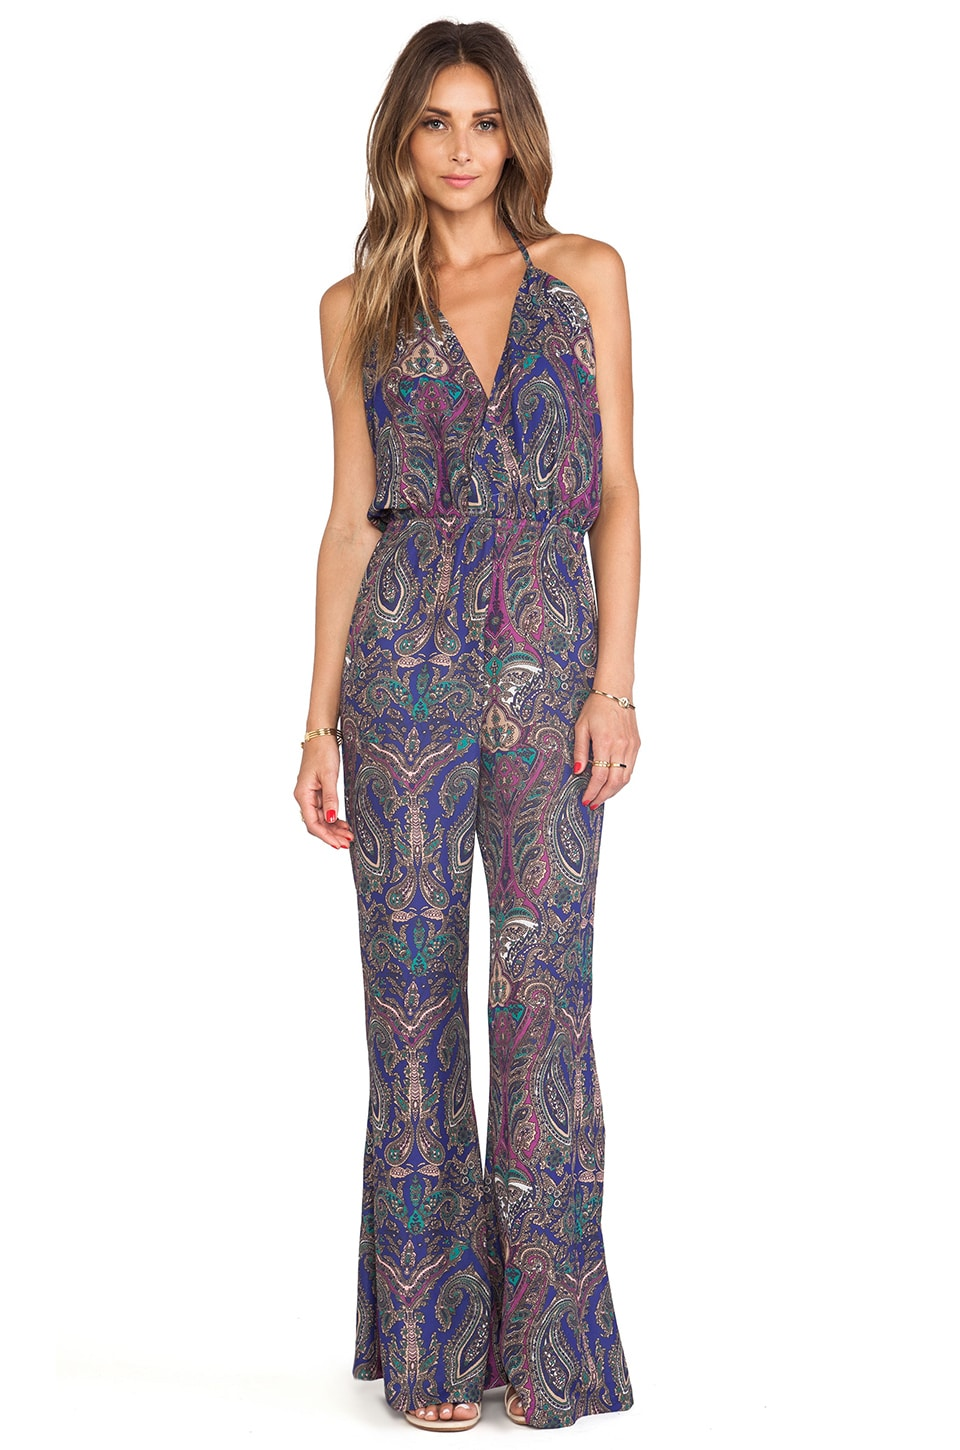 Tularosa Janelle Jumpsuit in Paisley Repeat